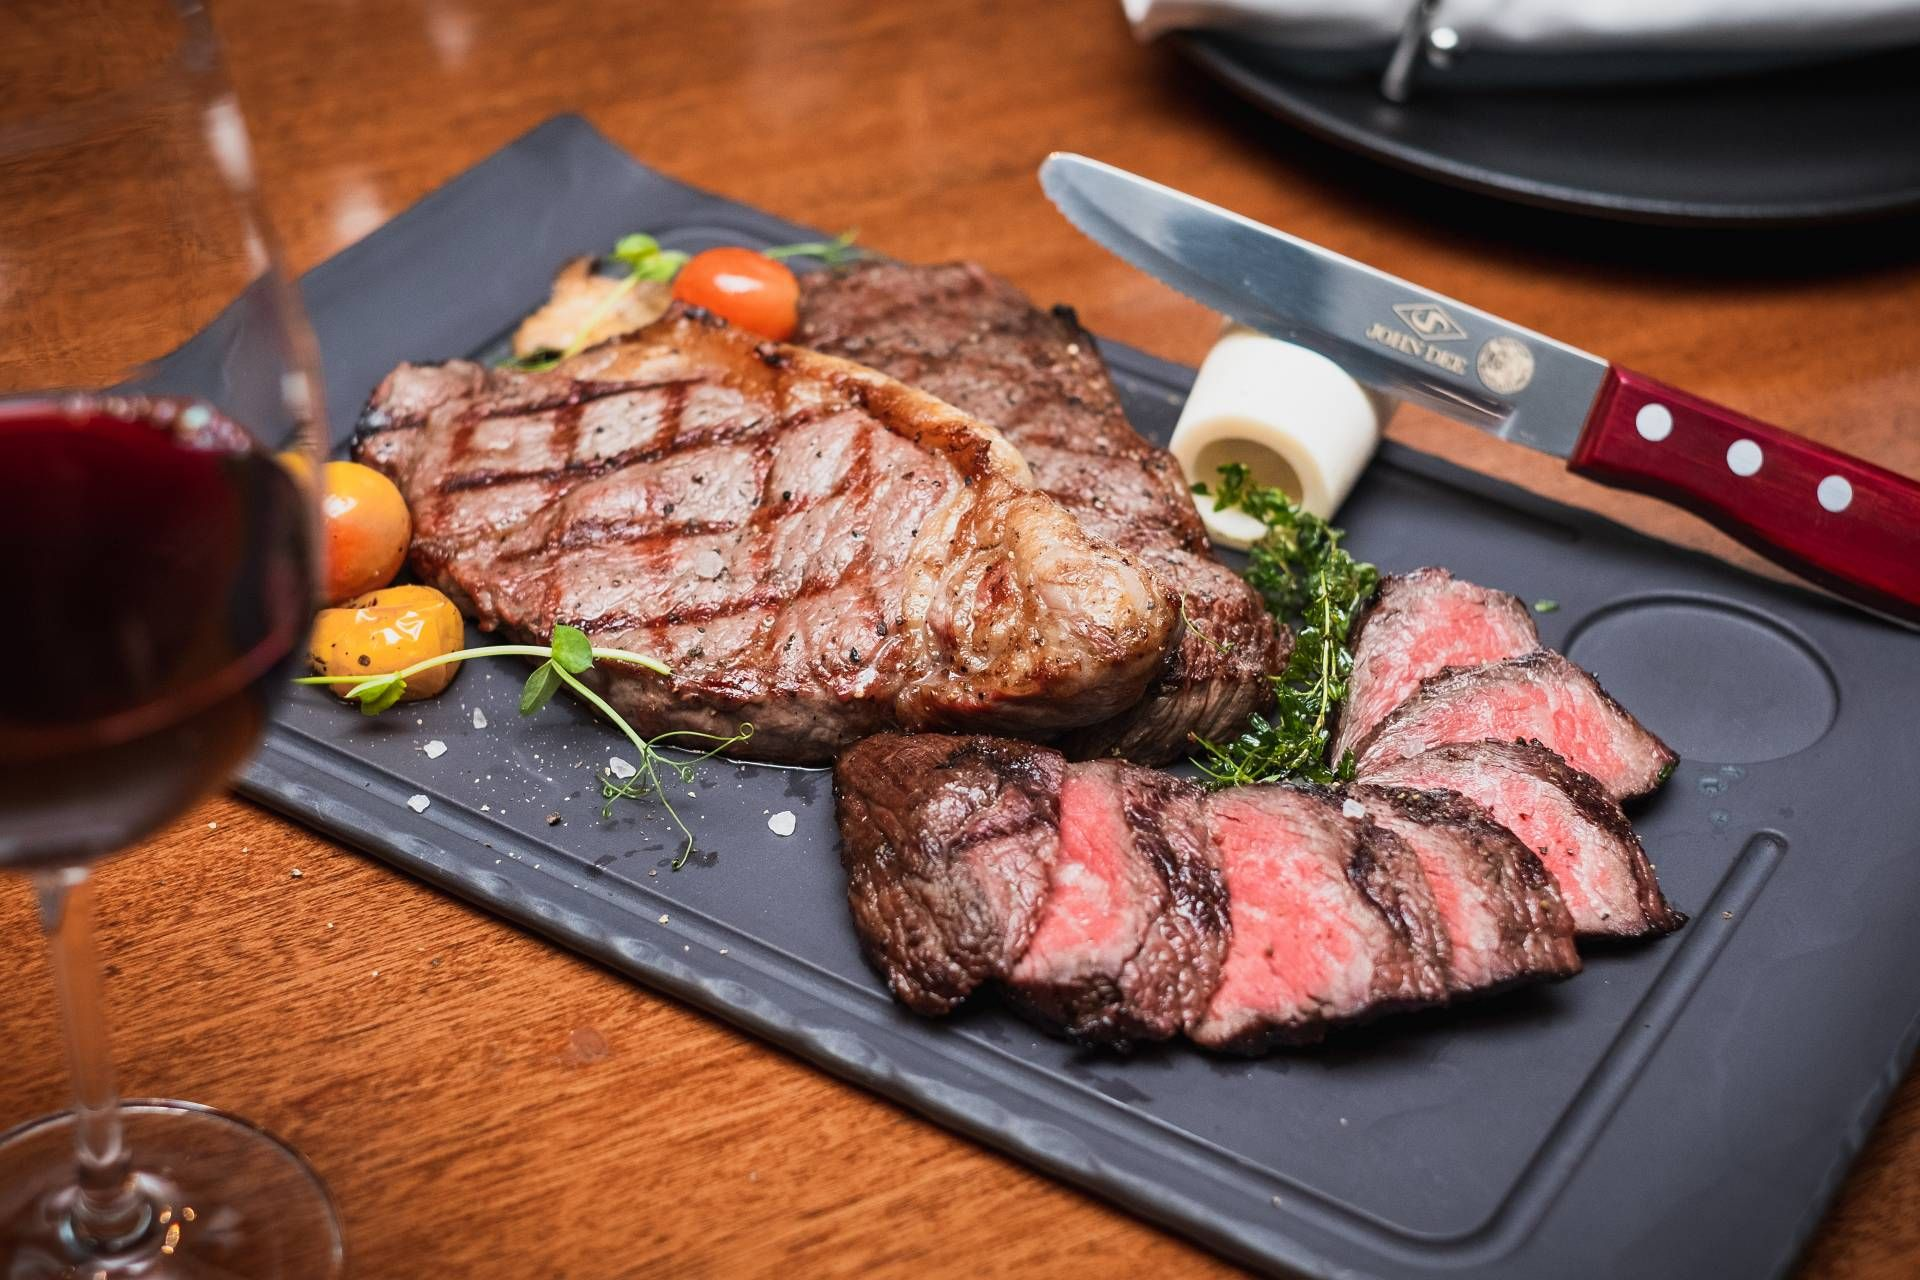 Sage Bespoke Grill Serves the Finest Cuts from Australia's Oldest, Single-Family Owned Meat Farm